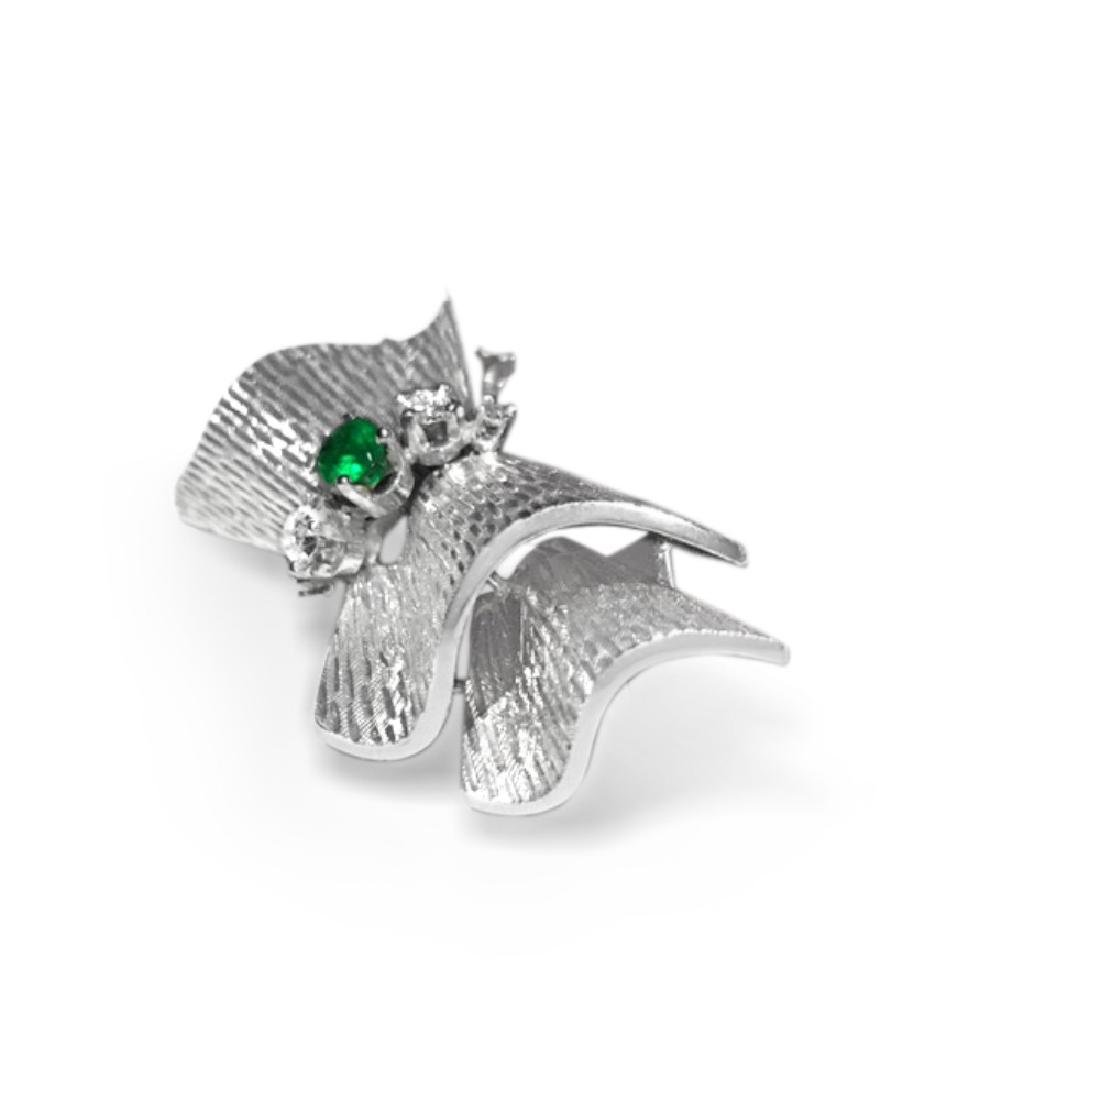 18k White Gold VINTAGE. DIAMOND AND EMERALD PIN - 2